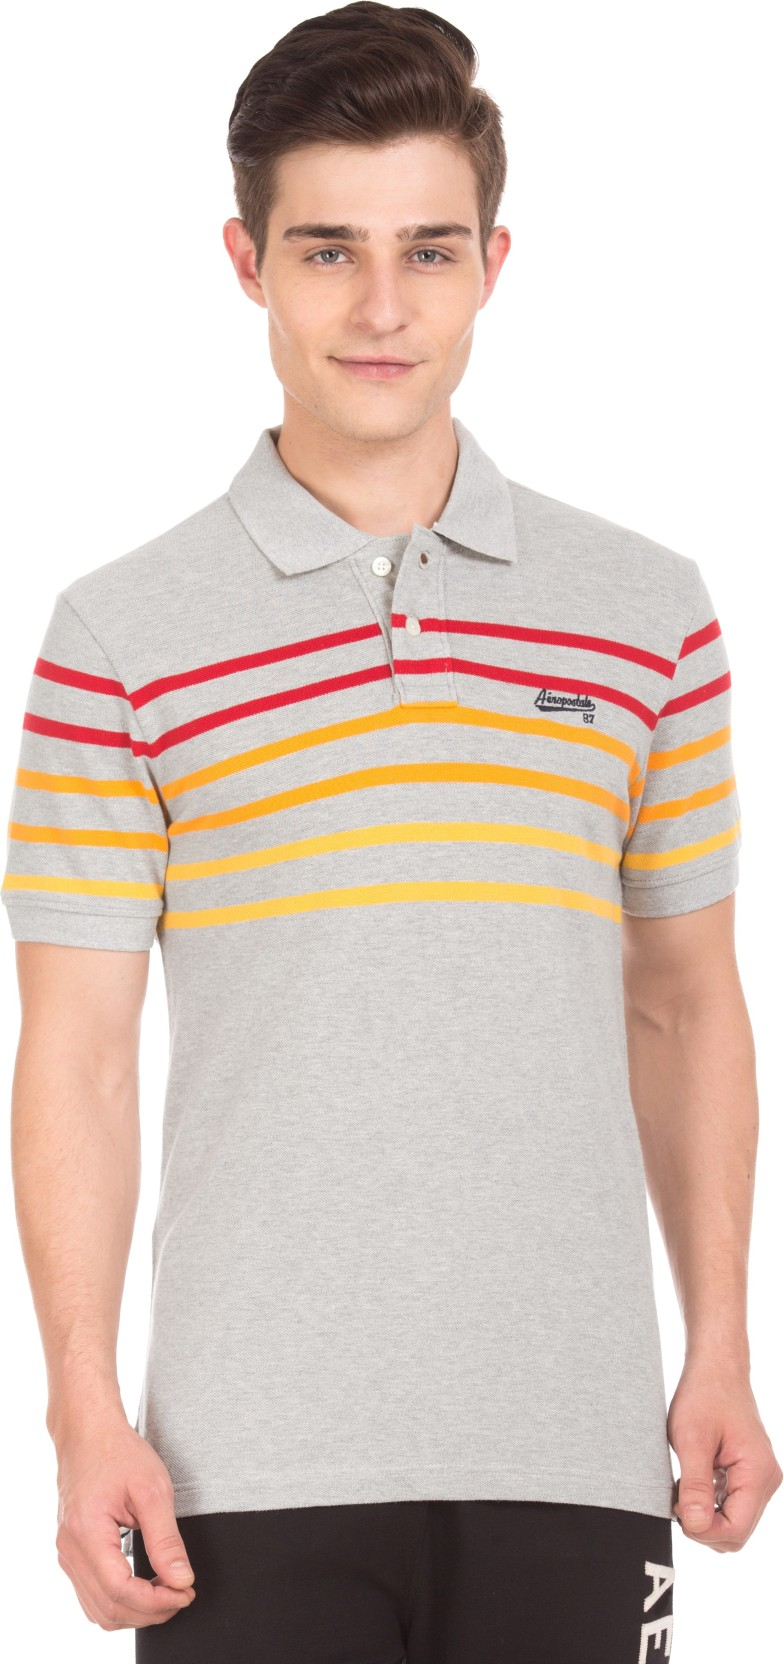 2b9439c8 Aeropostale Striped Men Polo Neck Grey T-Shirt - Buy Aeropostale ...